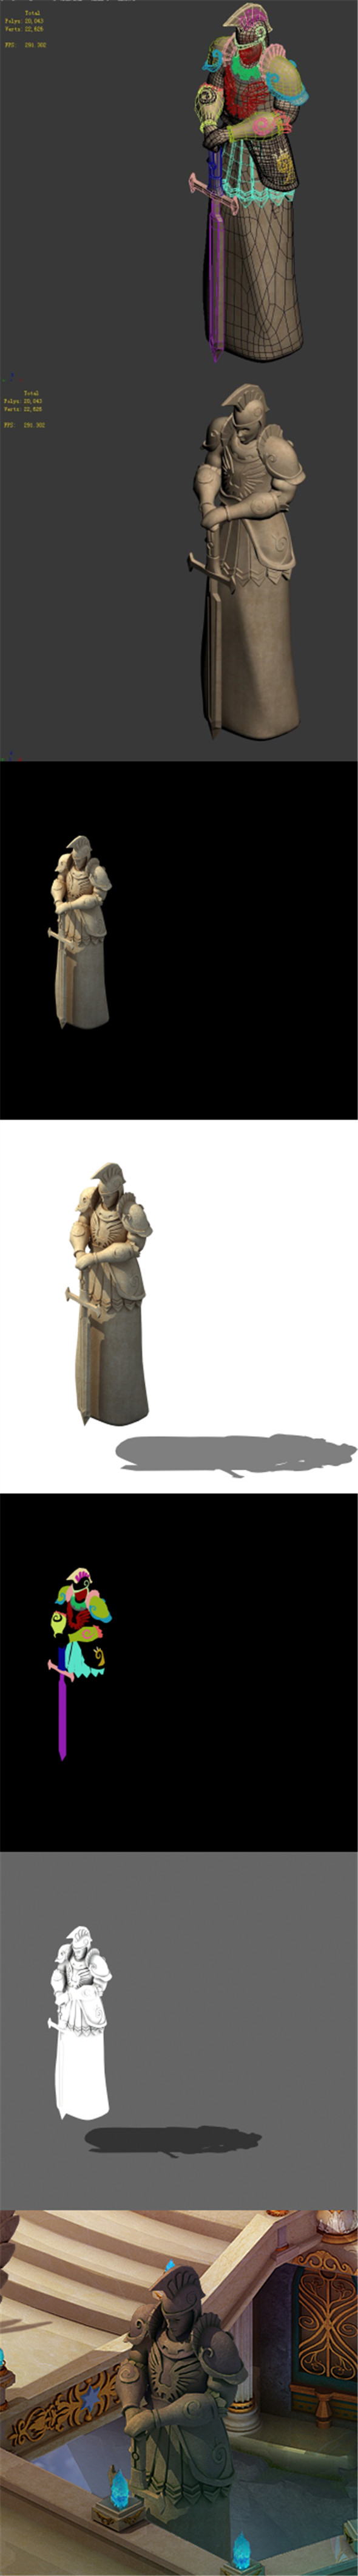 The Kingdom of God - the statue of the Romans - 3DOcean Item for Sale